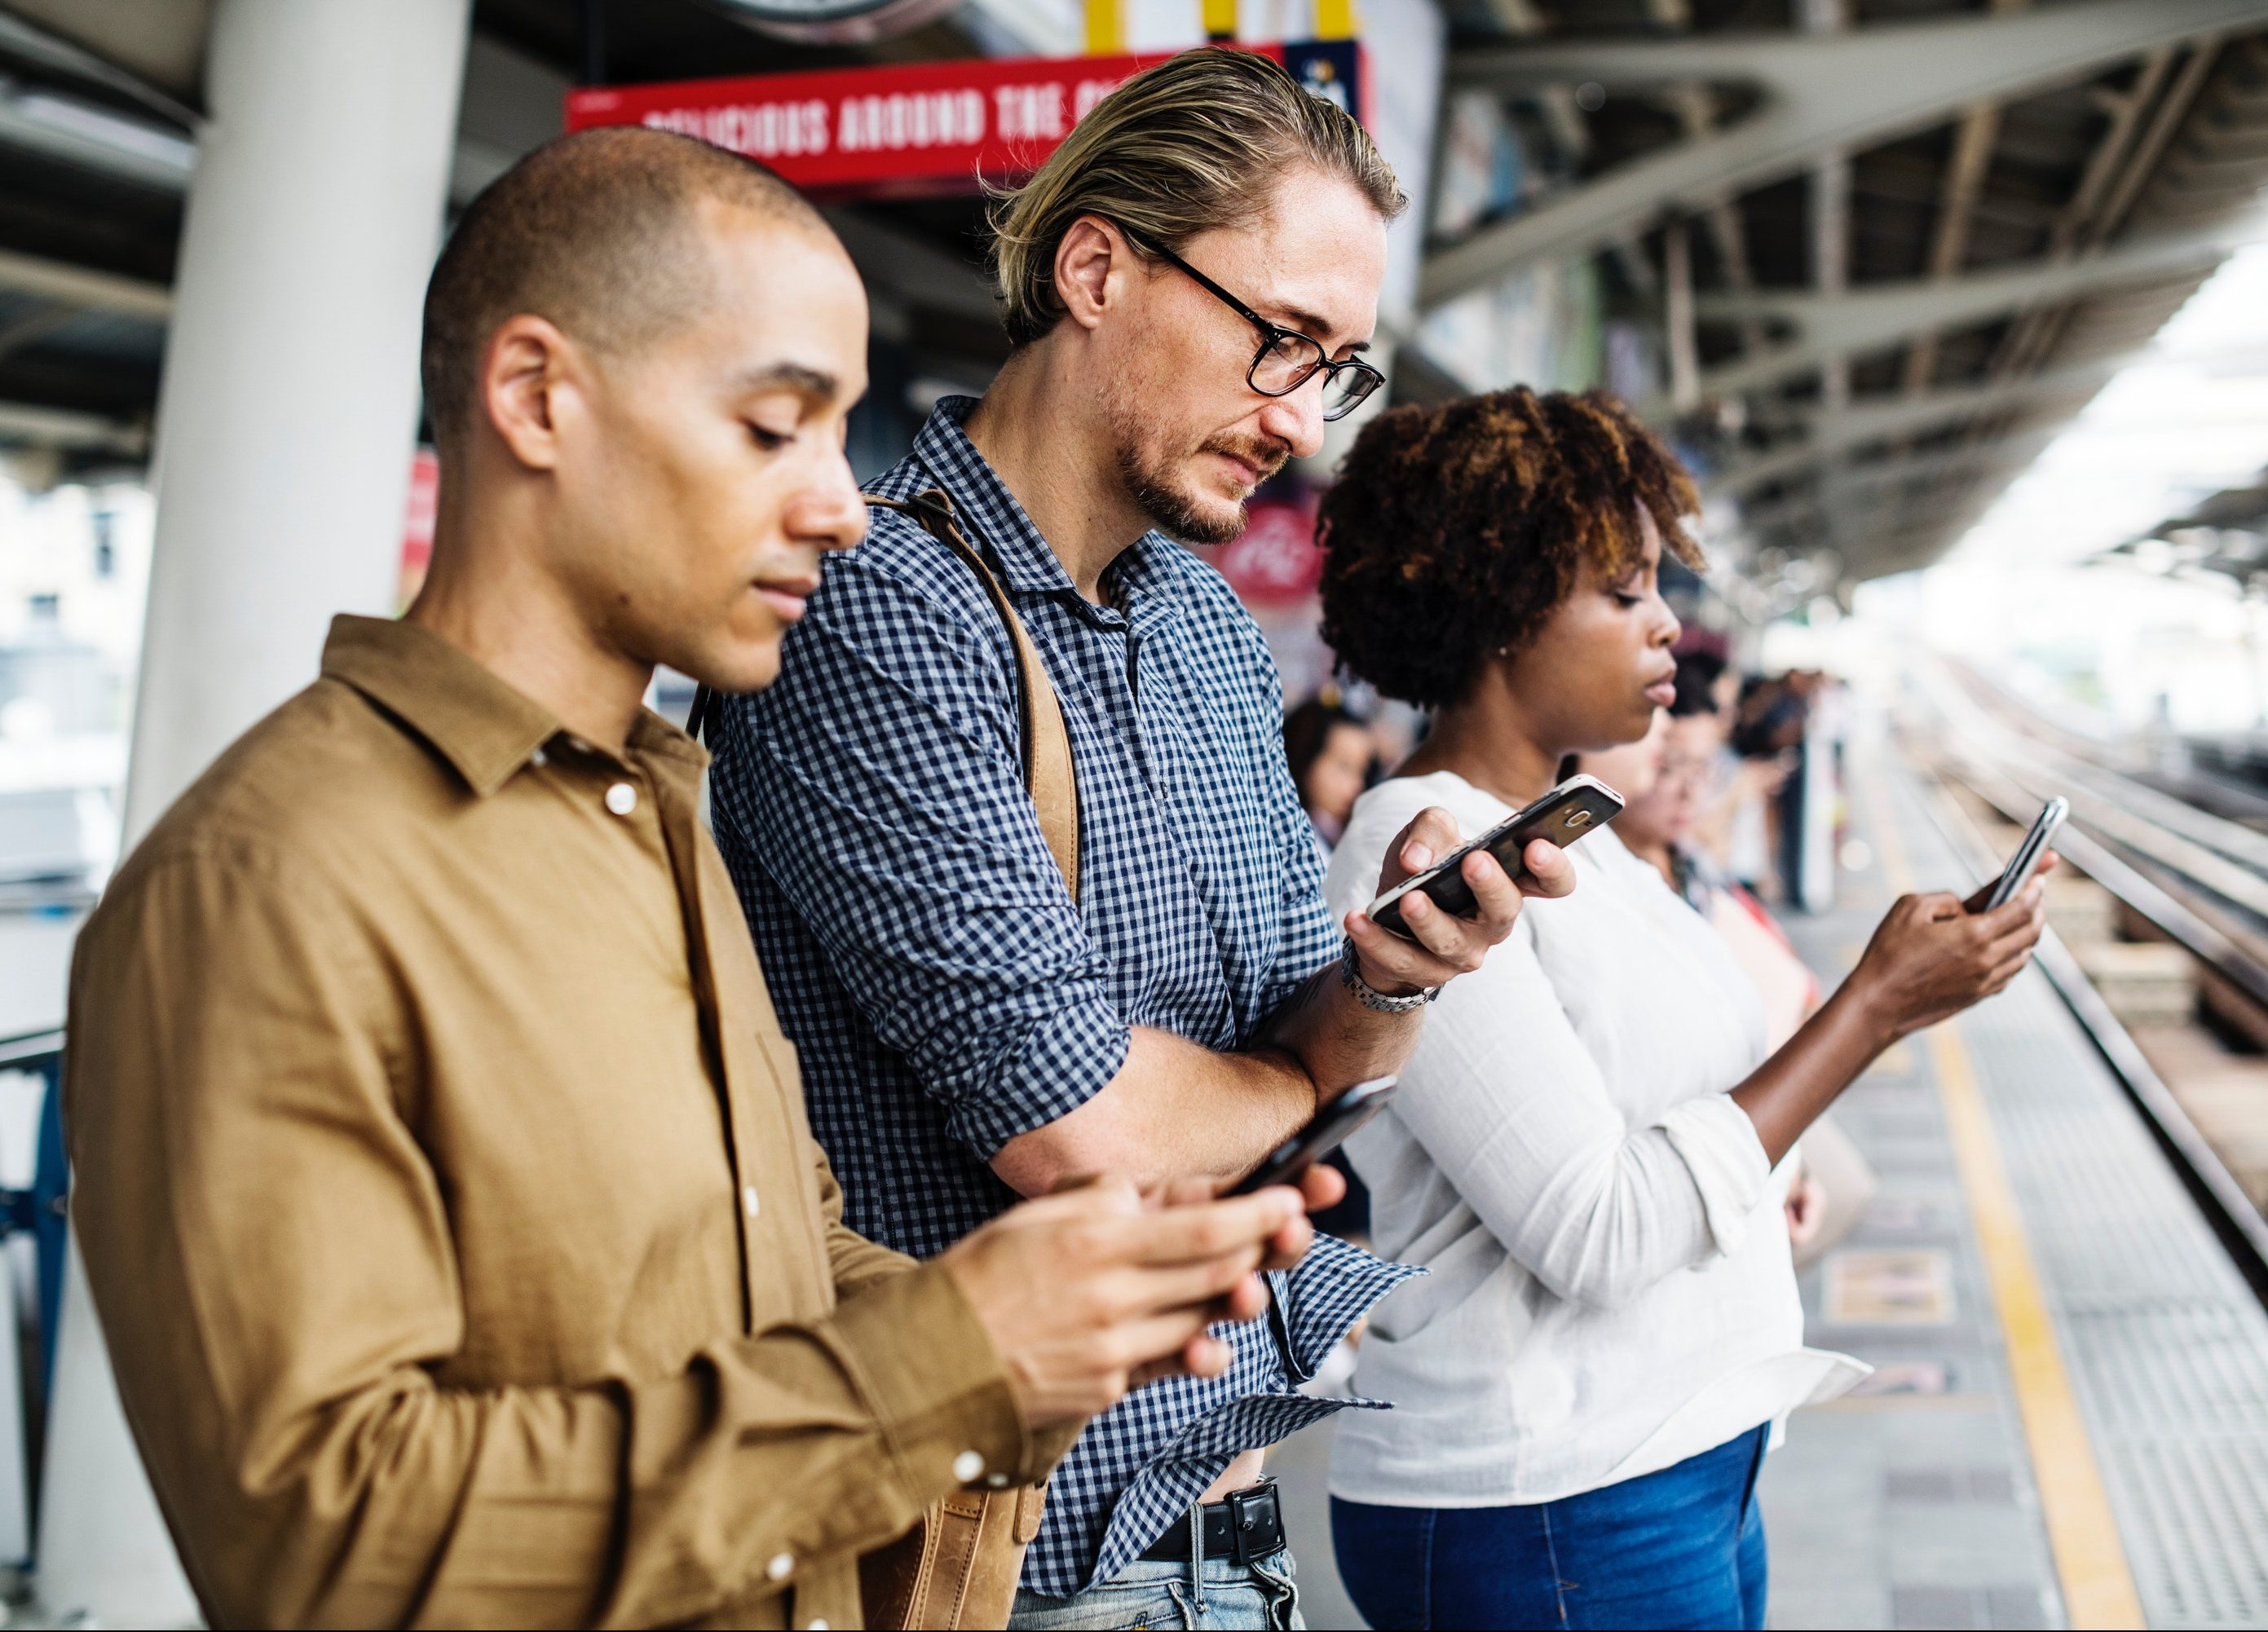 Image of three people looking at their cell phones and waiting for the subway.